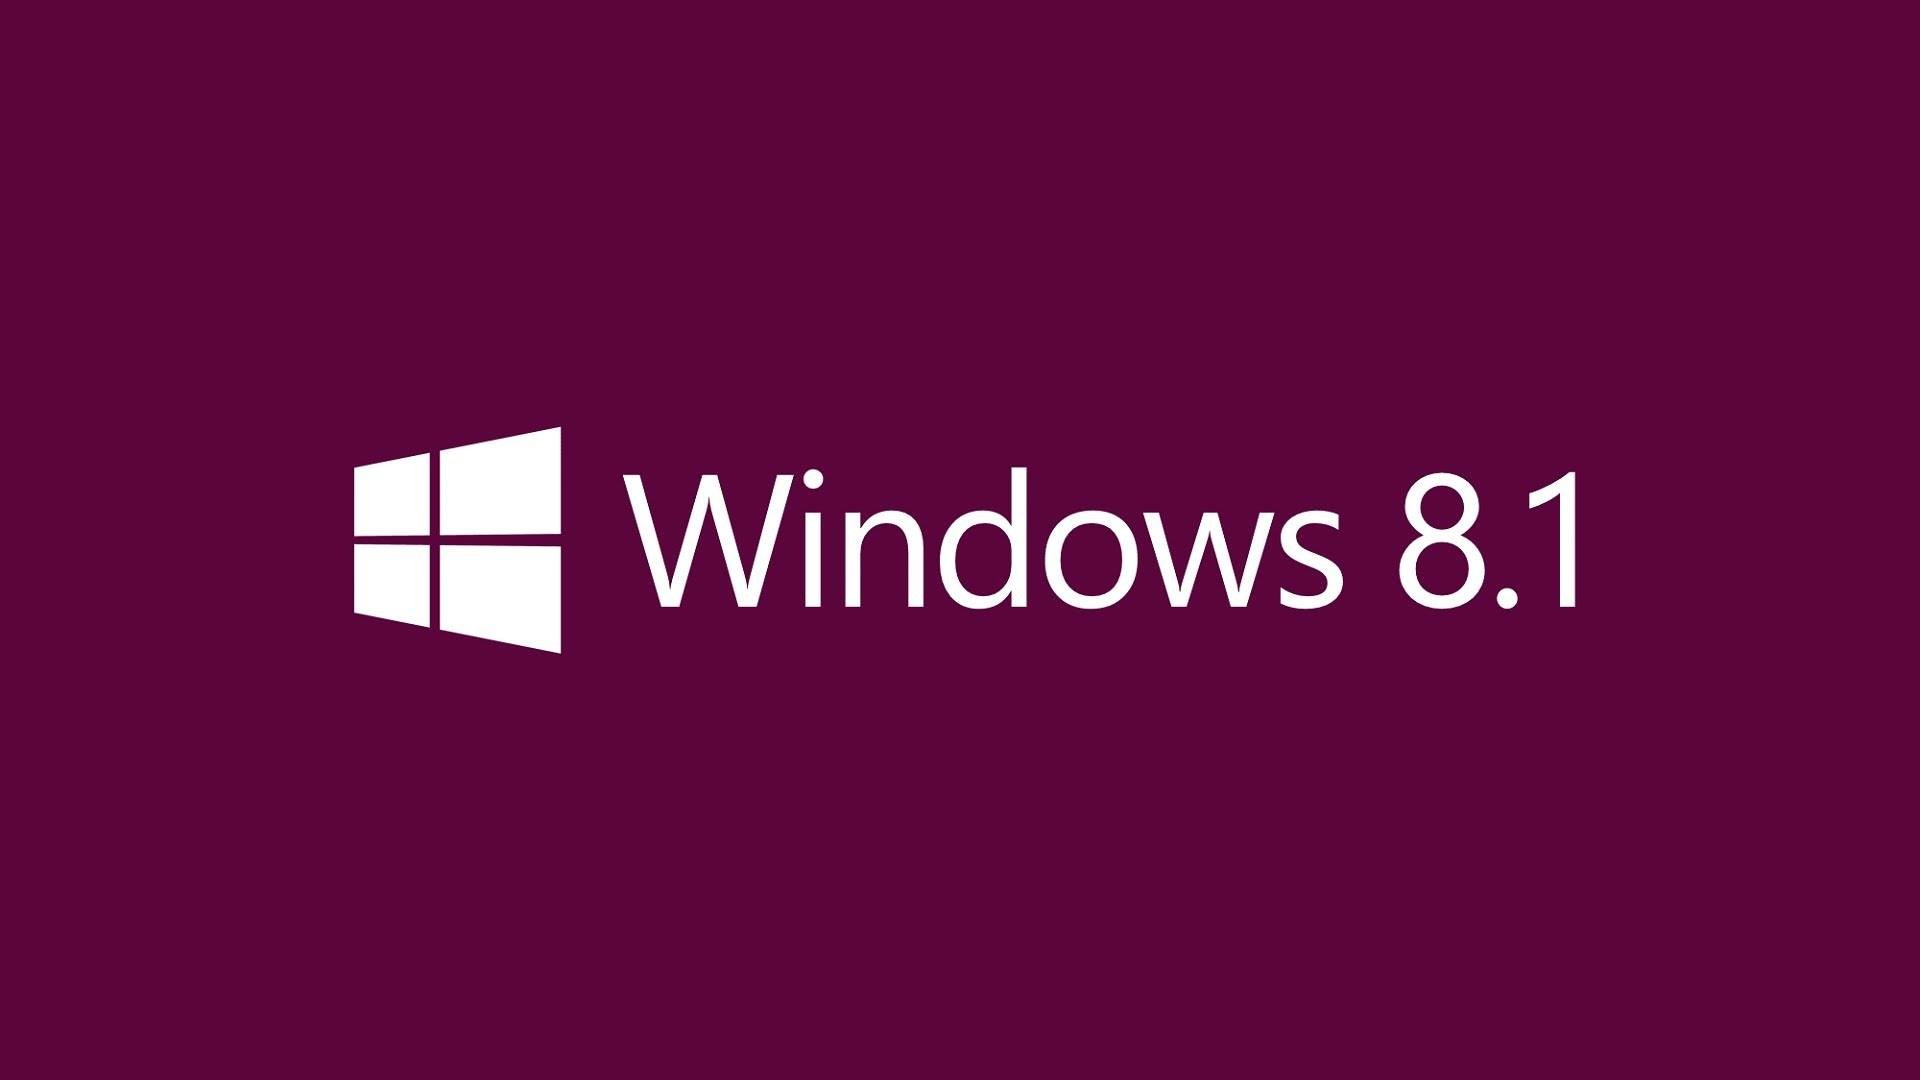 Are you looking for Windows wallpaper for your desktop backgrounds  widescreen computer? Ewallpaper Hub brings